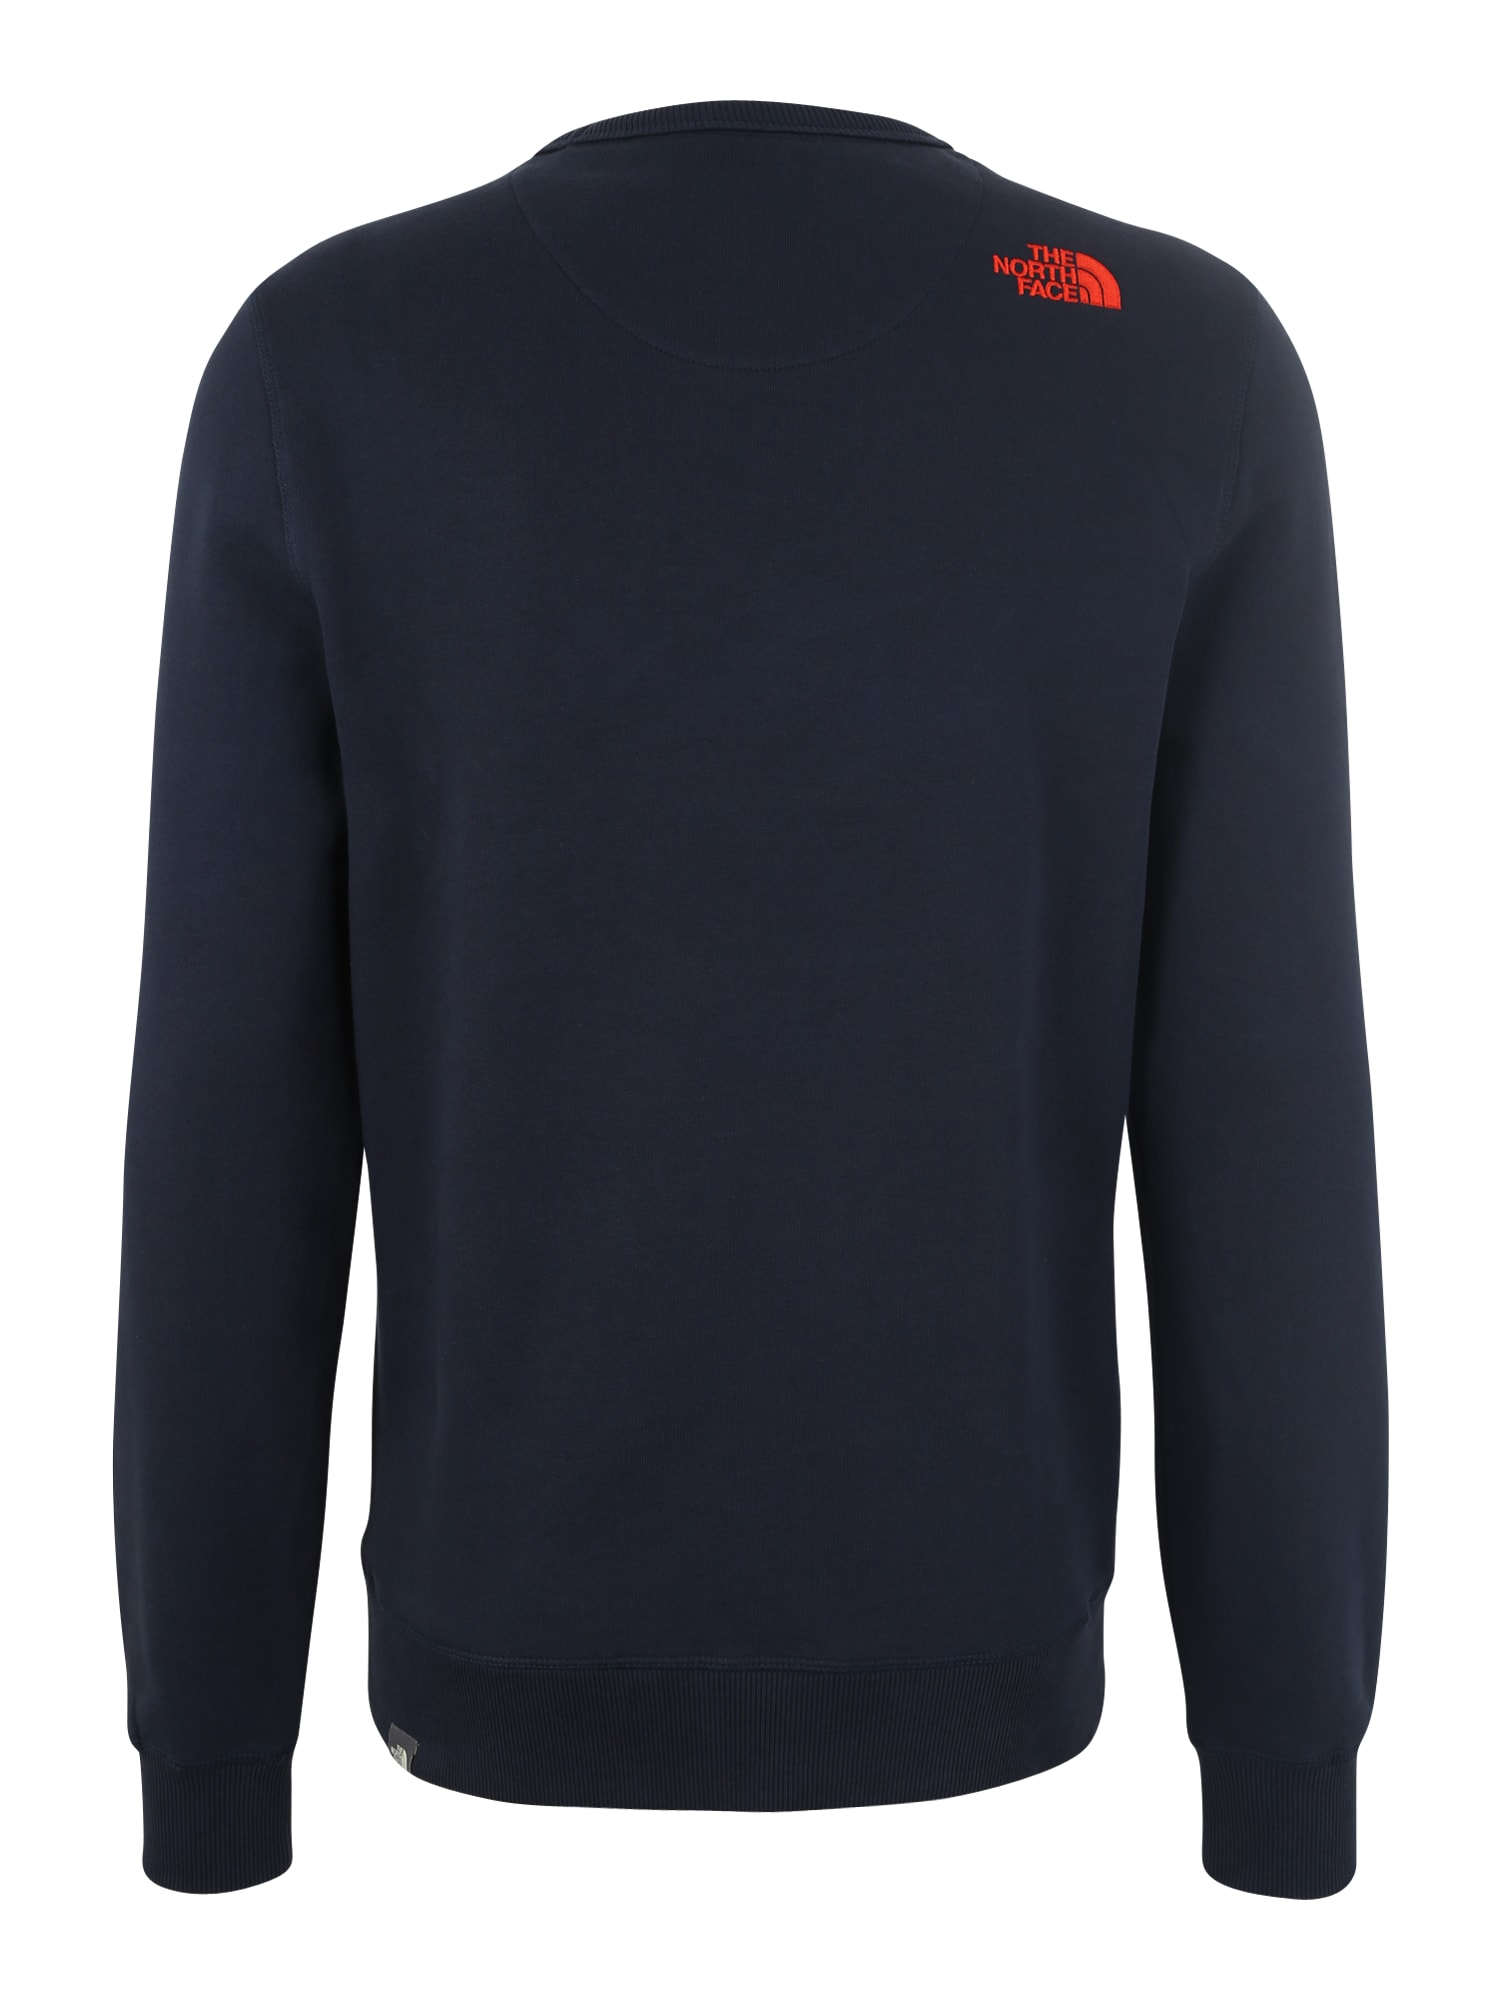 e11106dabff THE NORTH FACE, Heren Sweatshirt, donkerblauw / sinaasappel / wit